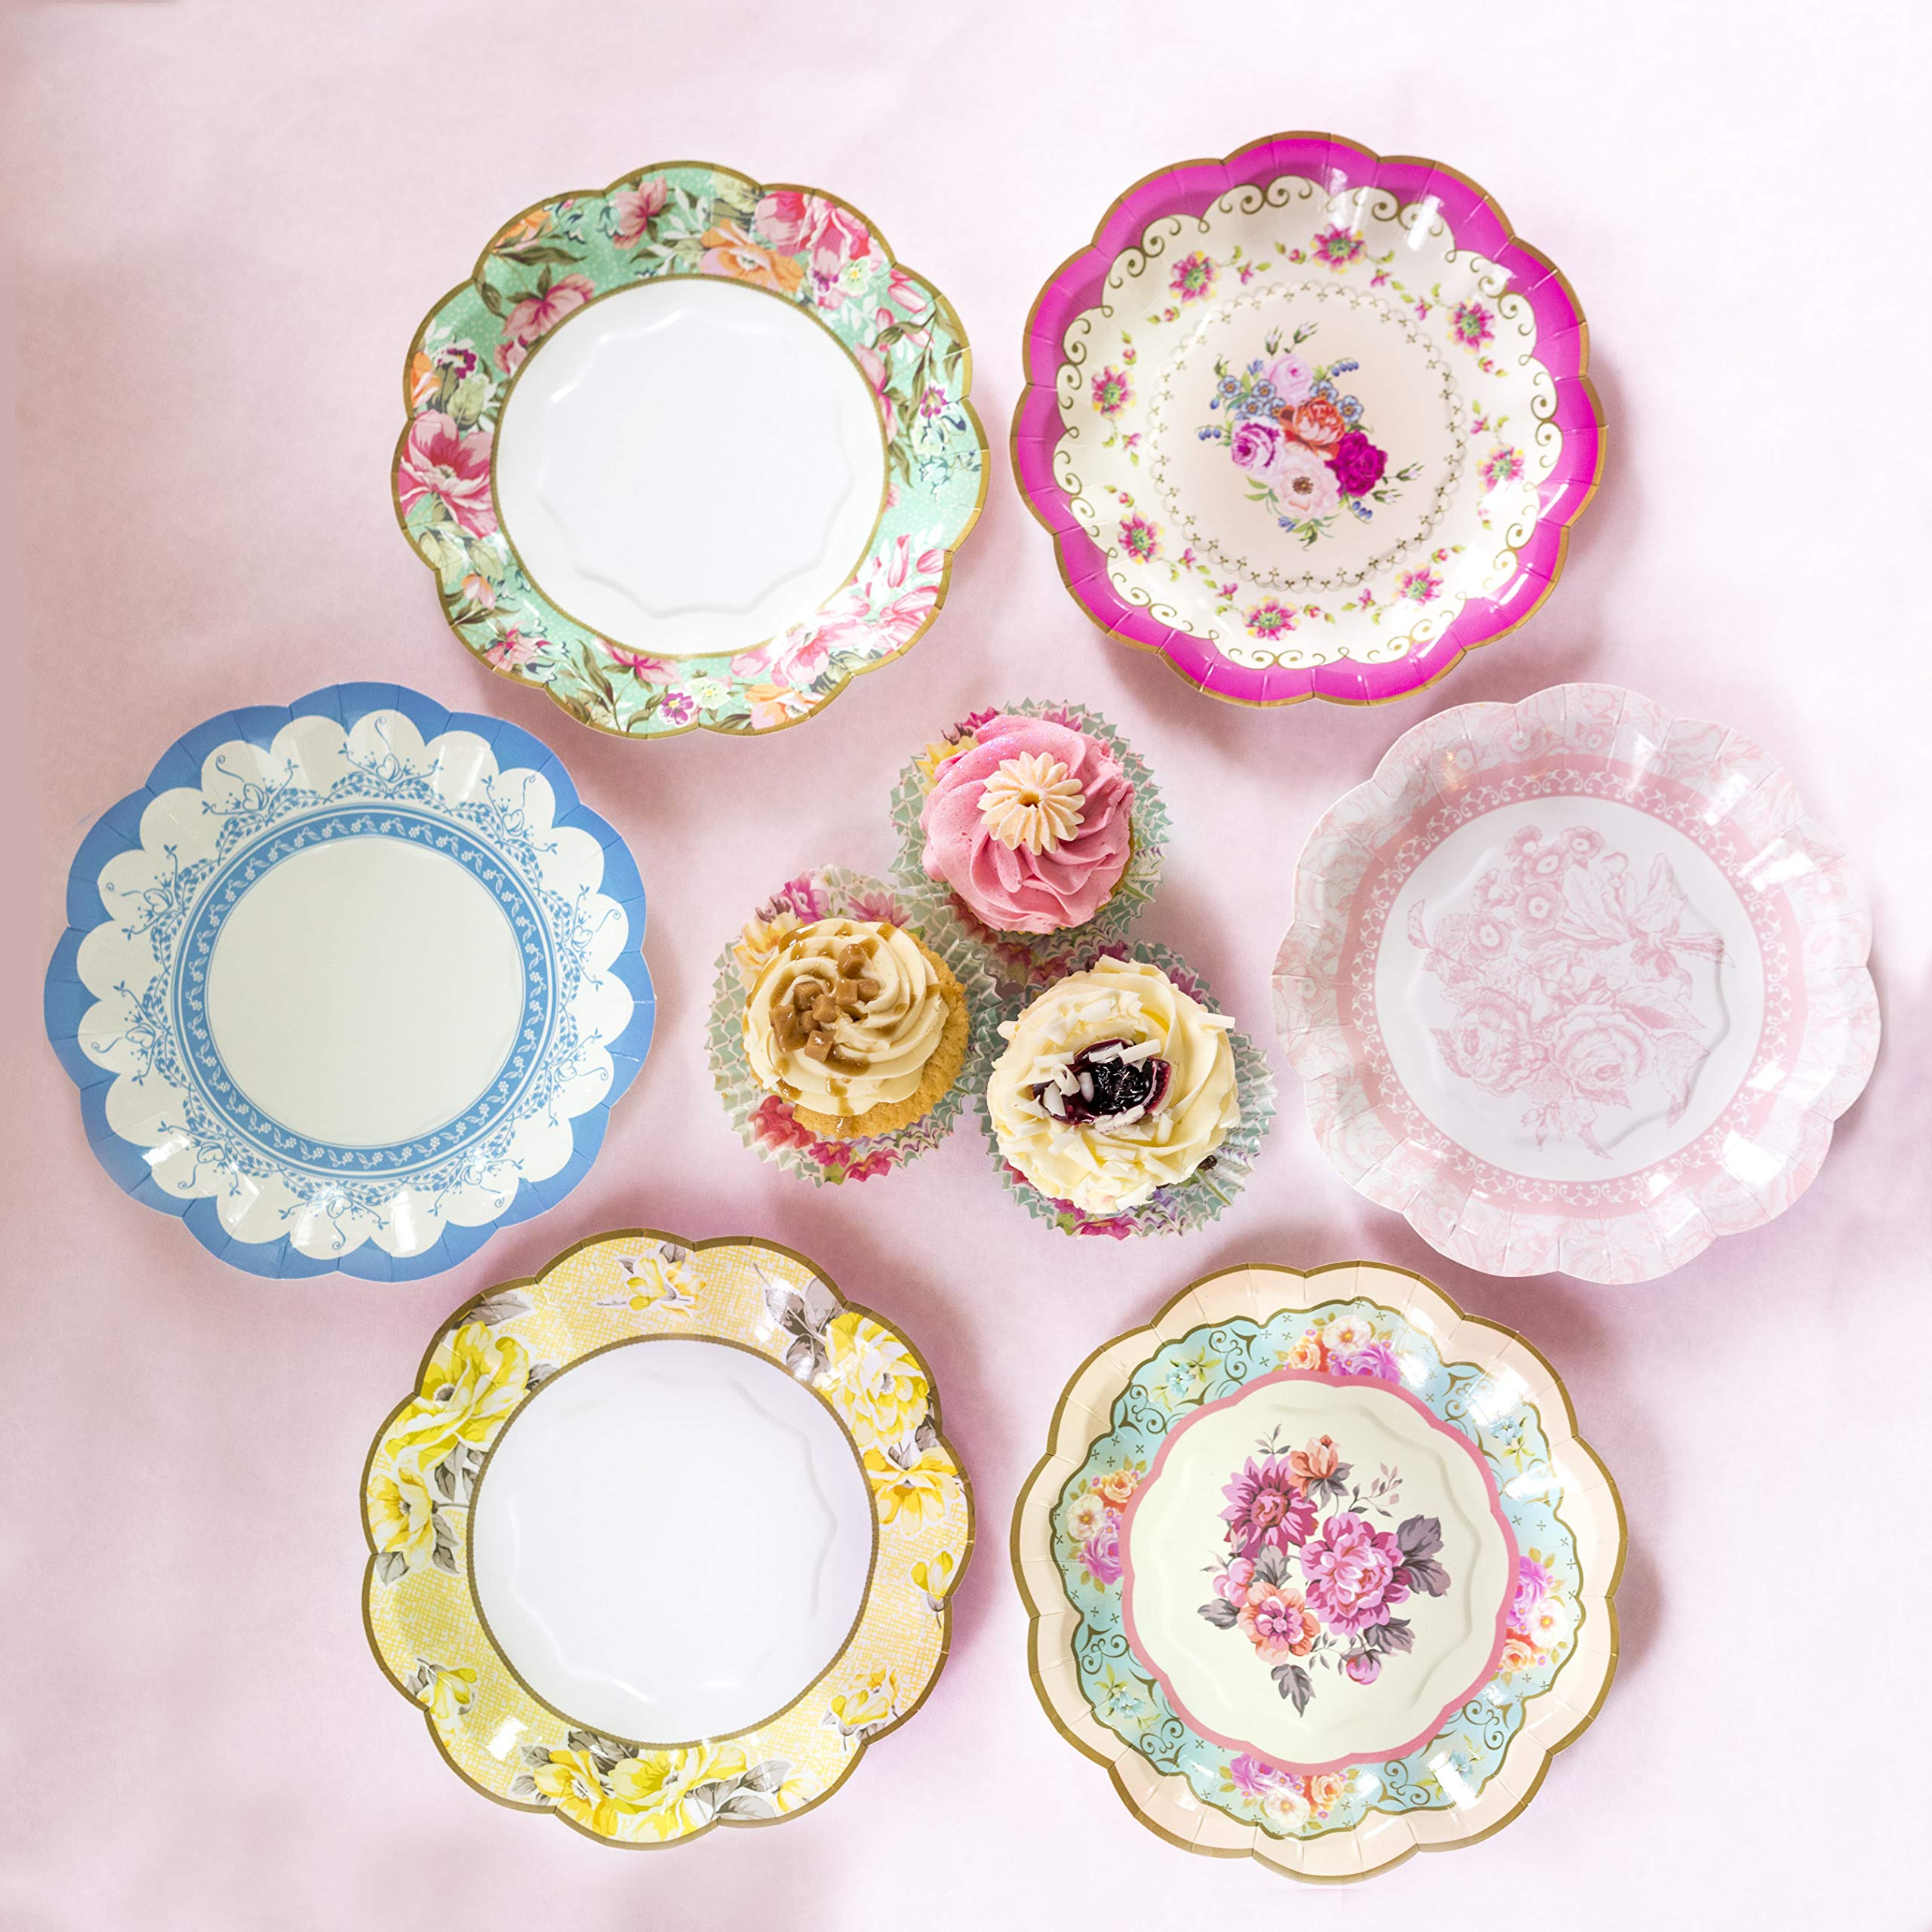 Talking Tables Truly Scrumptious Vintage Floral Small 6.75 Paper Plates in 6 Designs for a Tea Party or Picnic, Multicolor (24 Pack)